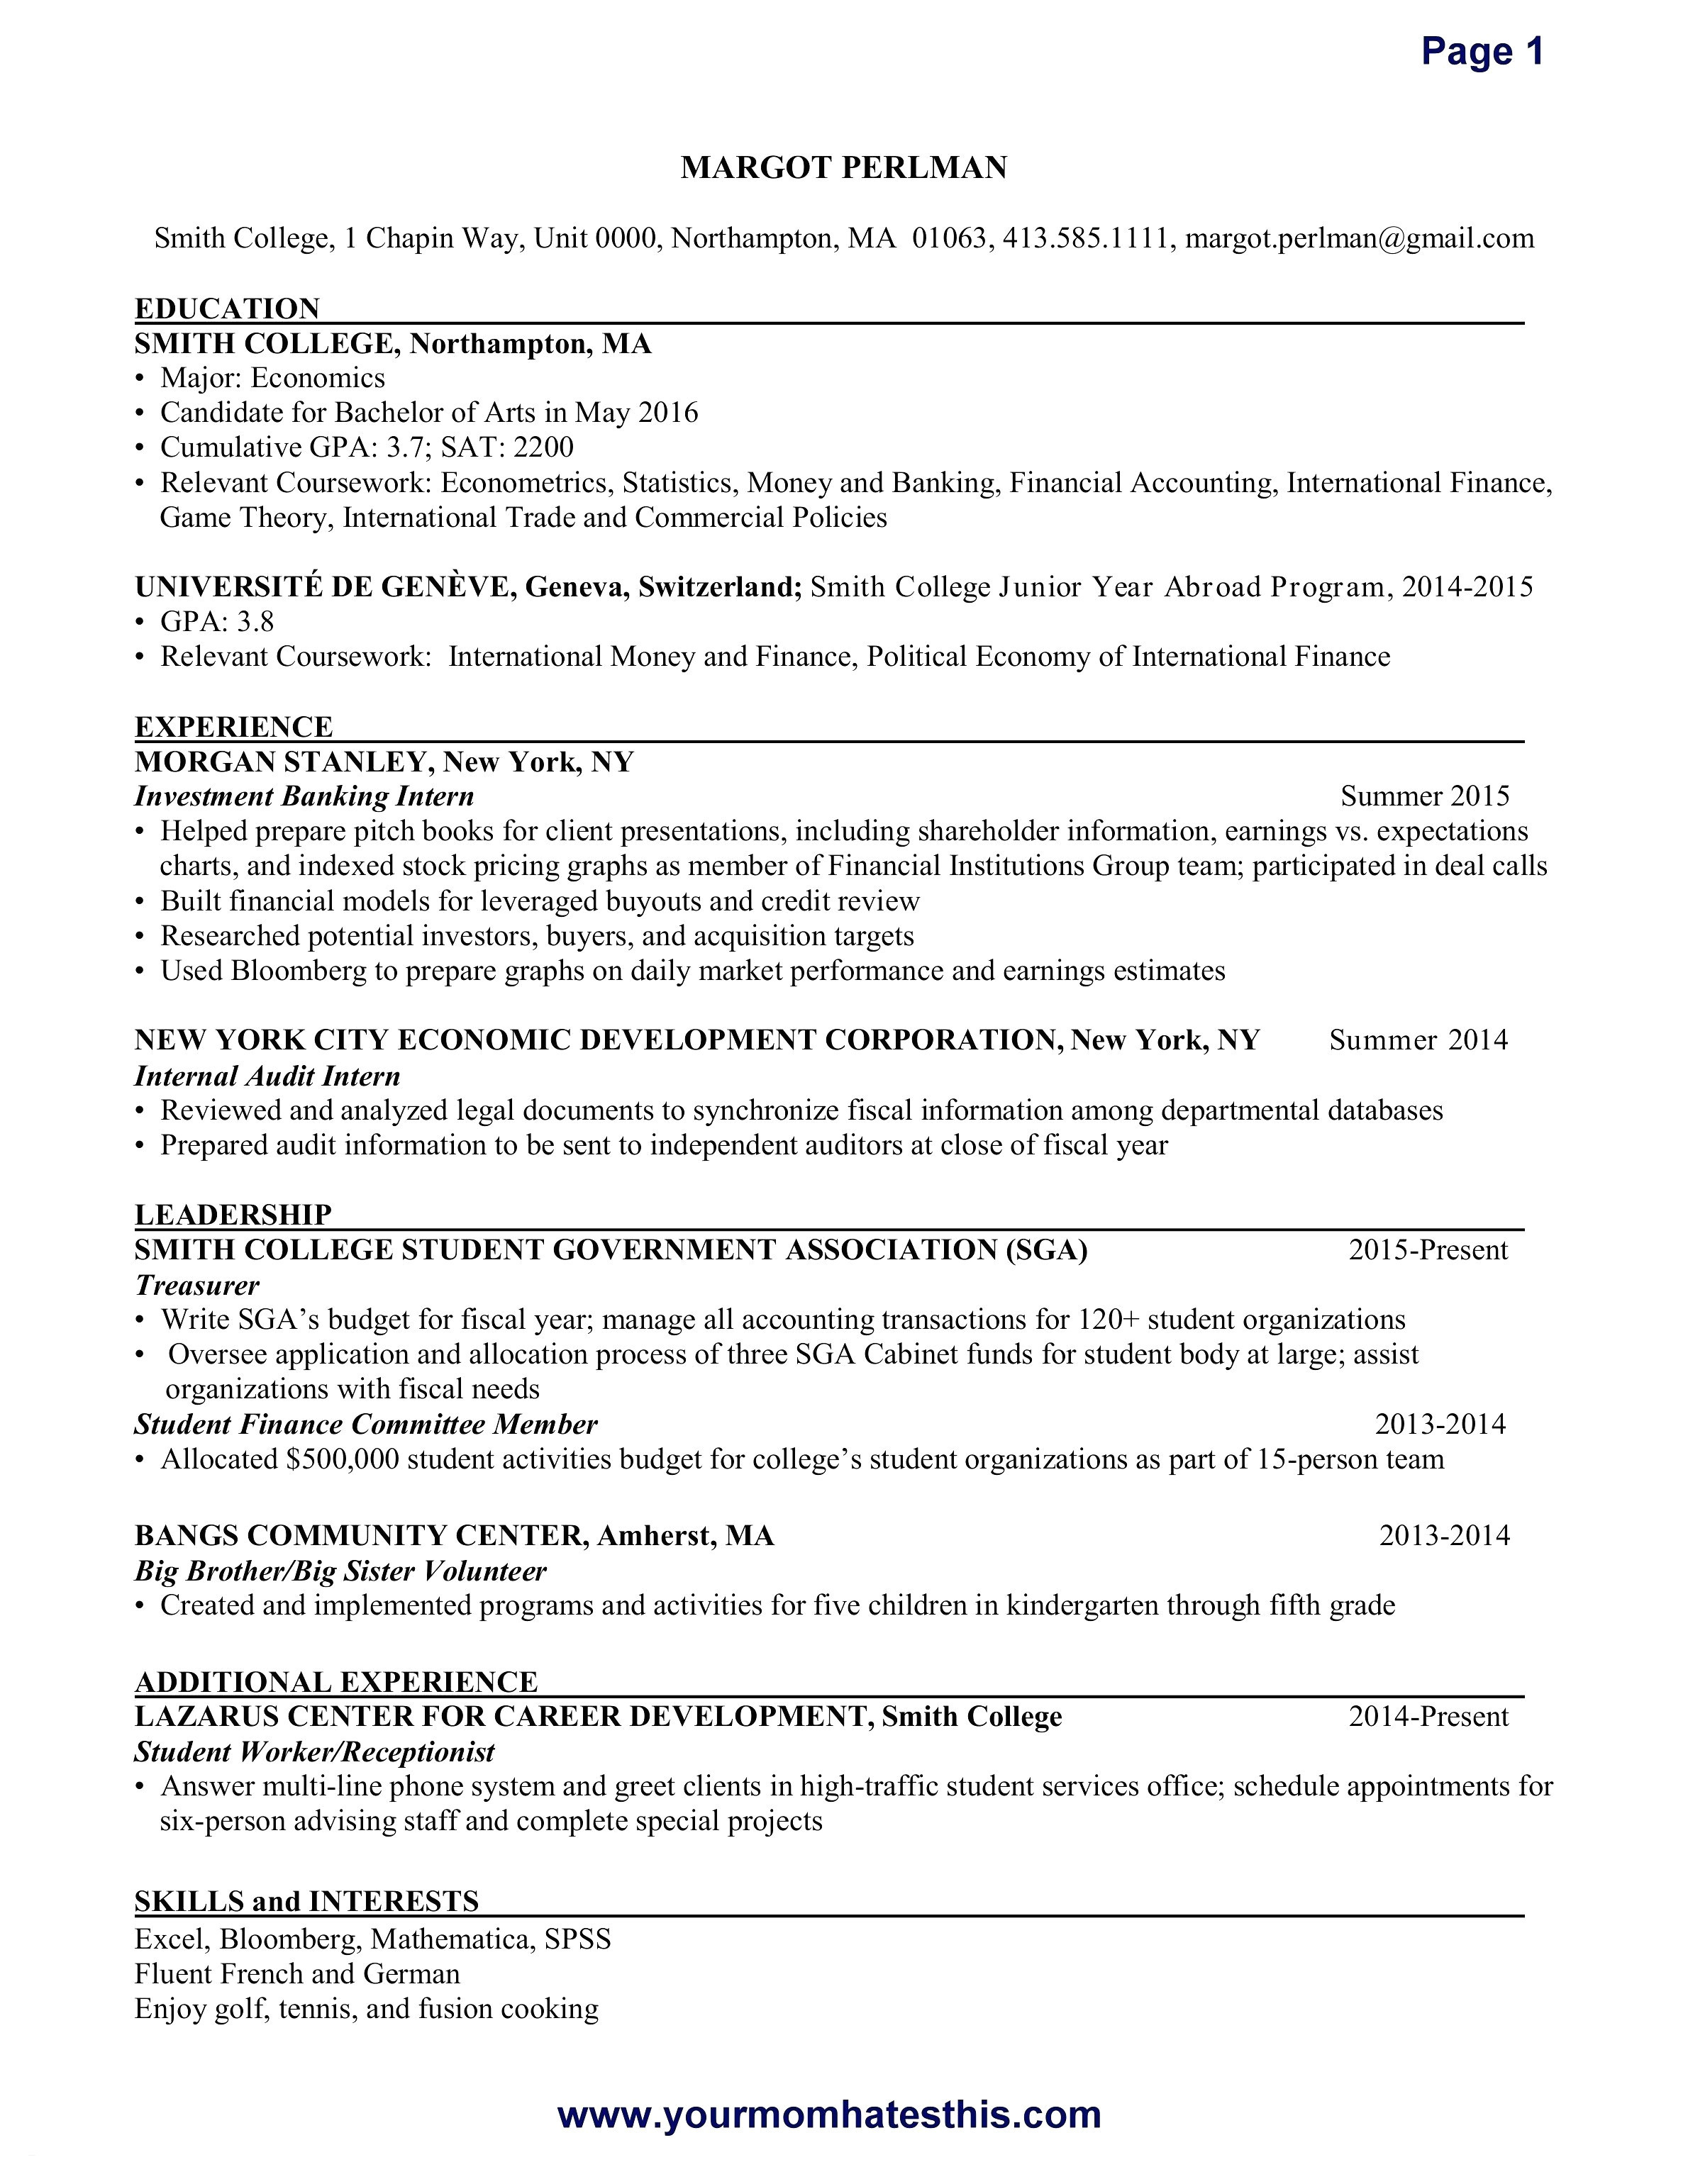 security officer resume template example-Awesome Security ficer Resume Sample 2-a